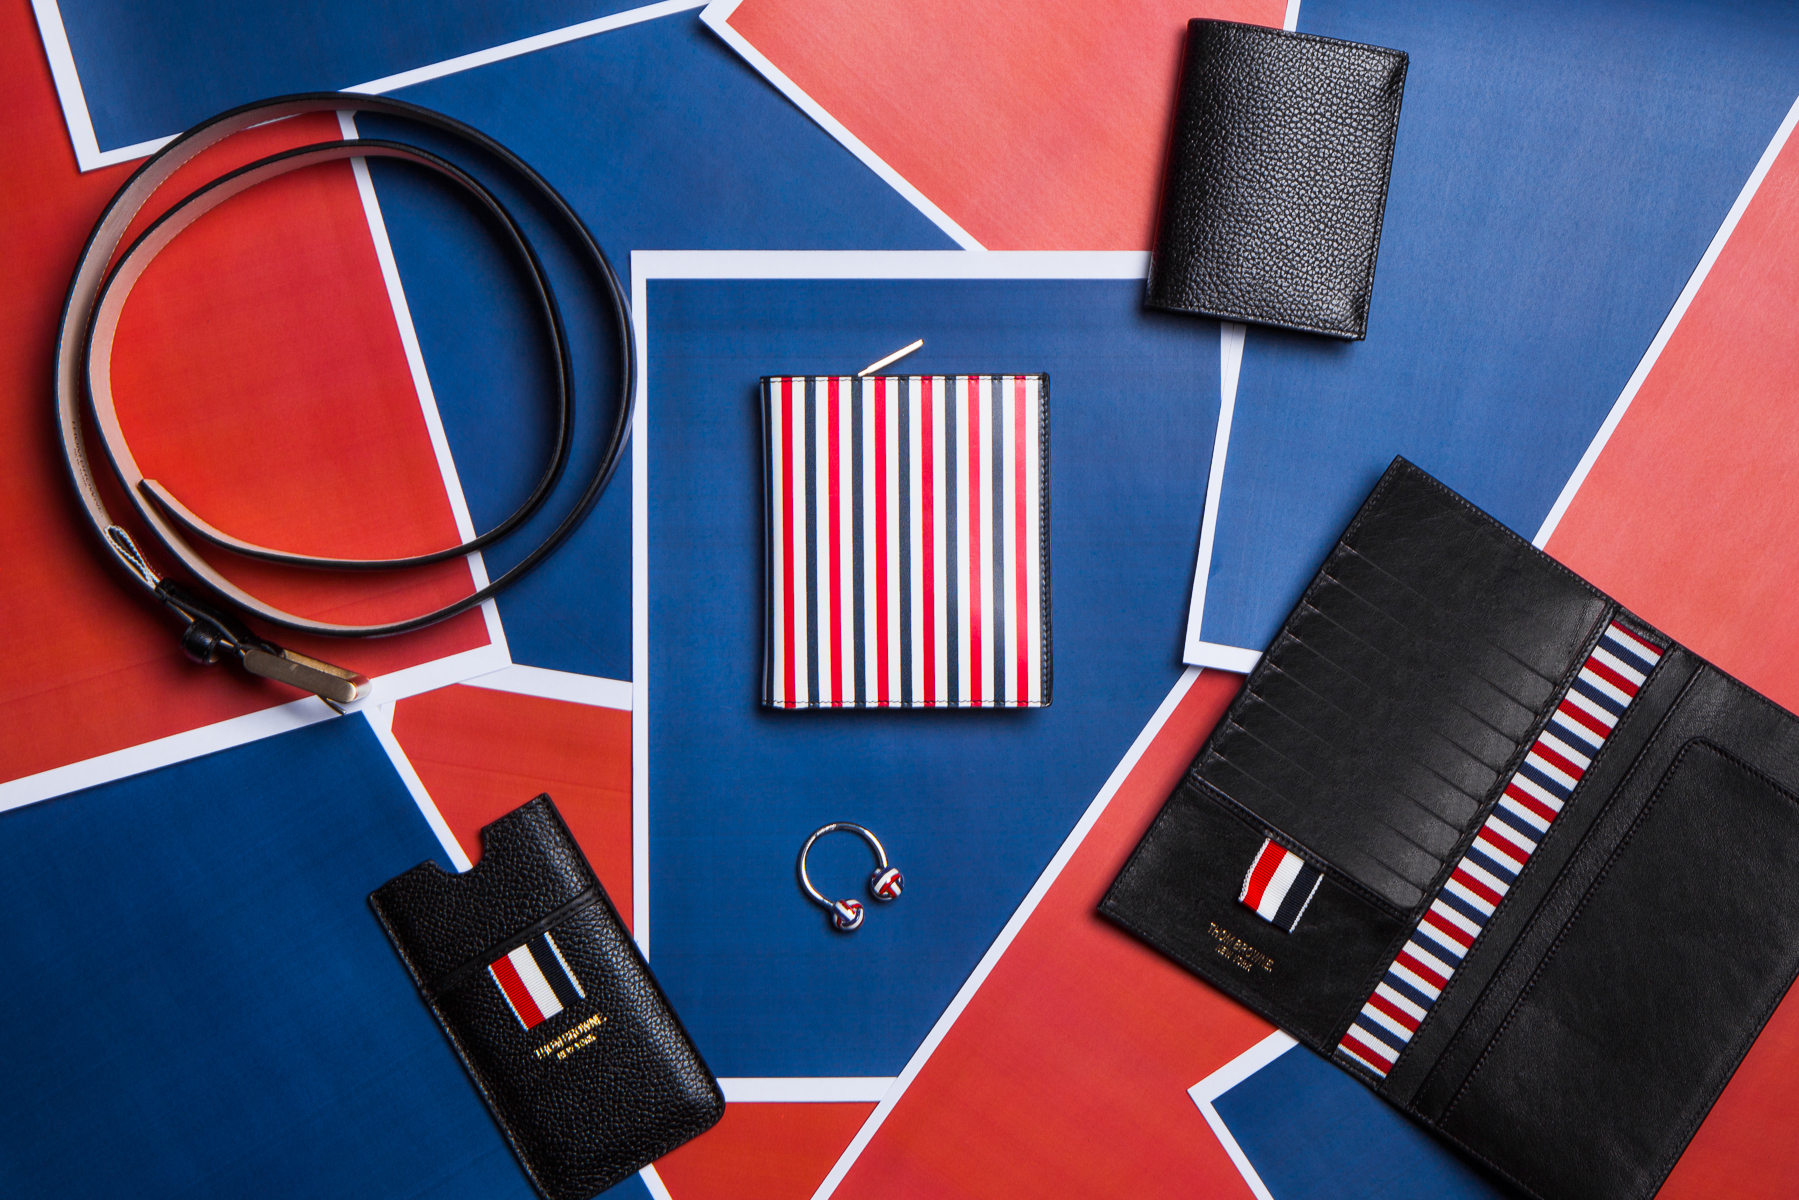 thom browne 2014 spring summer accessories